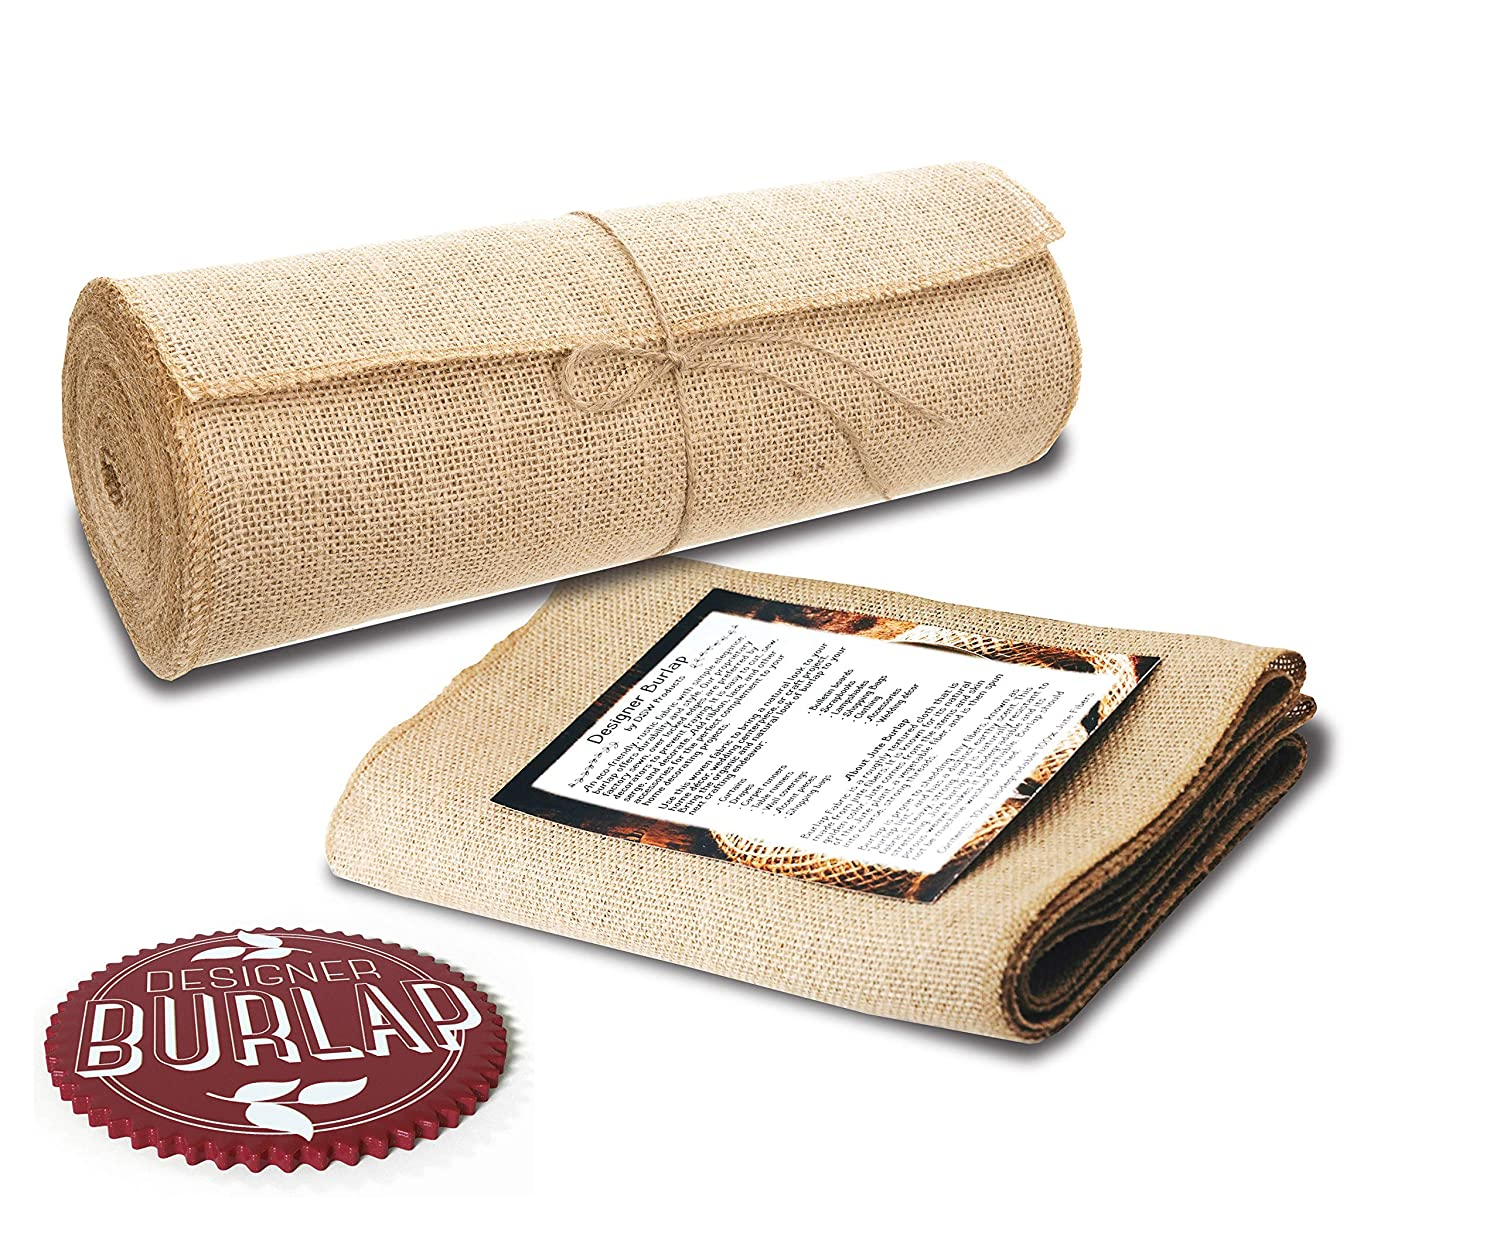 "Burlap Table Runners ~ 12"" Wide X 10 Yards Long Burlap Roll ~ Burlap Fabric Rolls. A NO-FRAY Burlap Runner with OVERLOCKED and SEWN Edges for Rustic Weddings, Decorations and Crafts!"